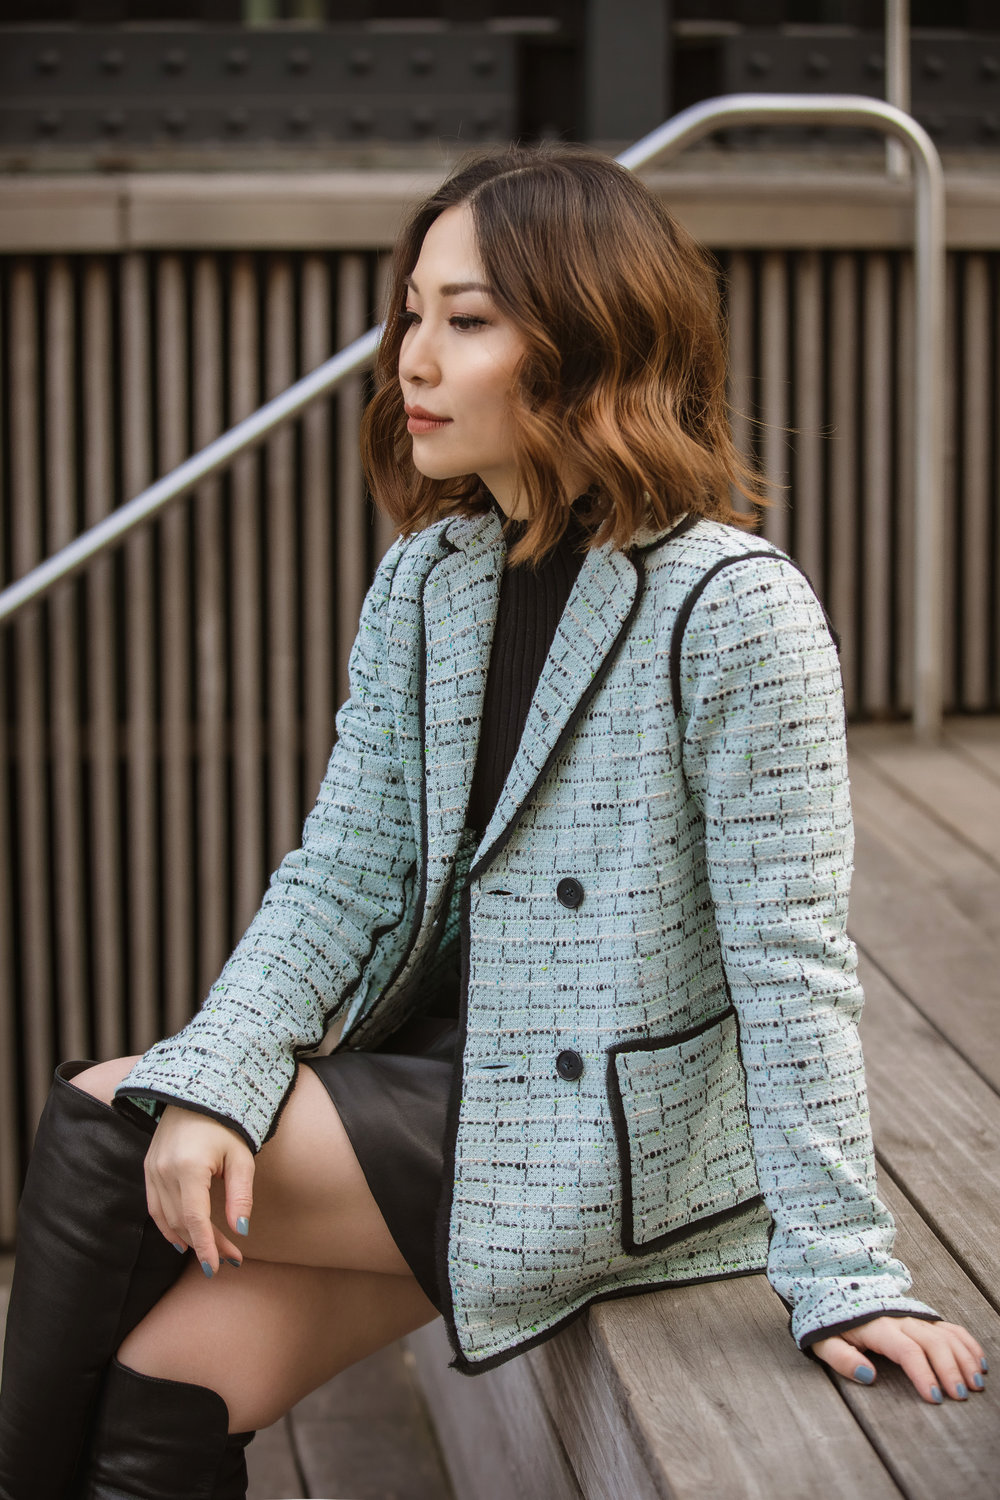 st john knits adriana multi tweed double breast jacket.JPG